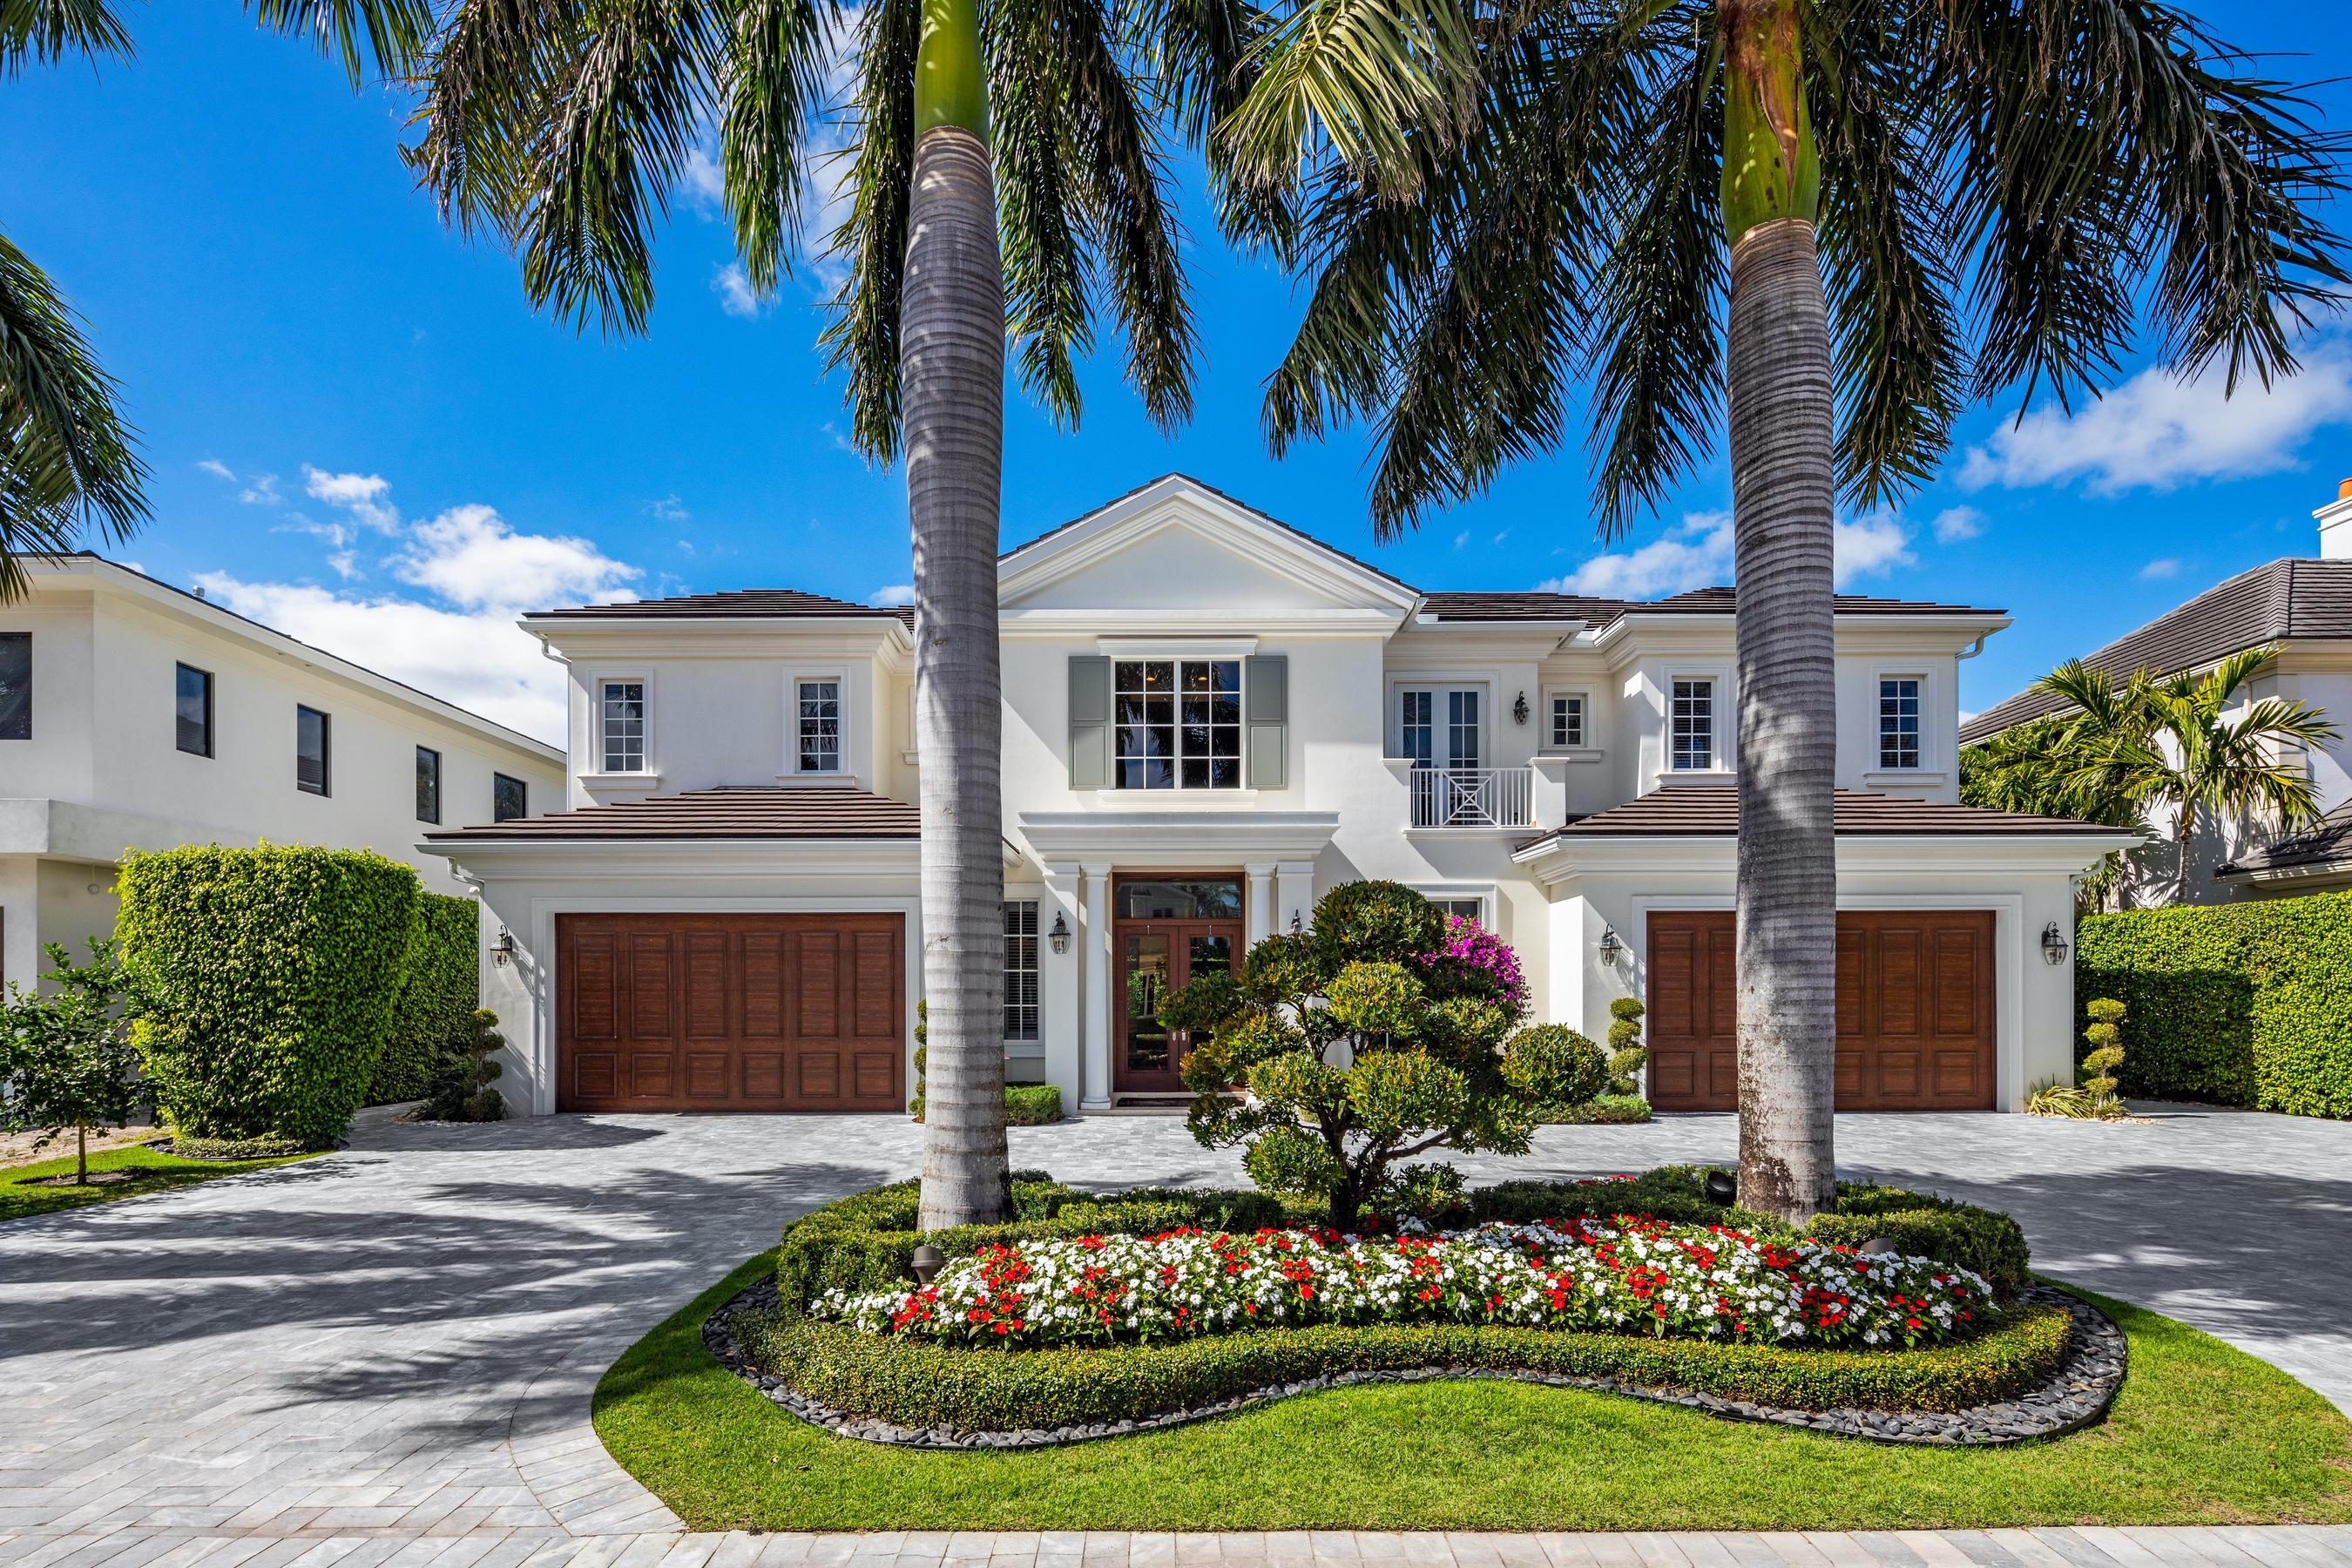 Offered fully furnished, turn-key move in ready, with sophisticated interior design, this 'like new' home was built by renowned builder, Bloomfield Construction in 2015. 1803 Sabal Palm Circle is located on an ultra-desirable, quiet street located within Royal Palm Yacht & Country Club. This home features a highly sought after floor plan with 5 bedrooms, opulent His and Her Master Baths, Club Room, and Study. A marble paver circular driveway affords four car garages, plus a golf cart/NEV garage. A large heated saltwater pool and spa graces the private backyard and large, covered outdoor living spaces. Manicured landscaping, synthetic turf backyard, and all of the features and conveniences you'd expect from this elegant estate home like hurricane resistant construction and much more.